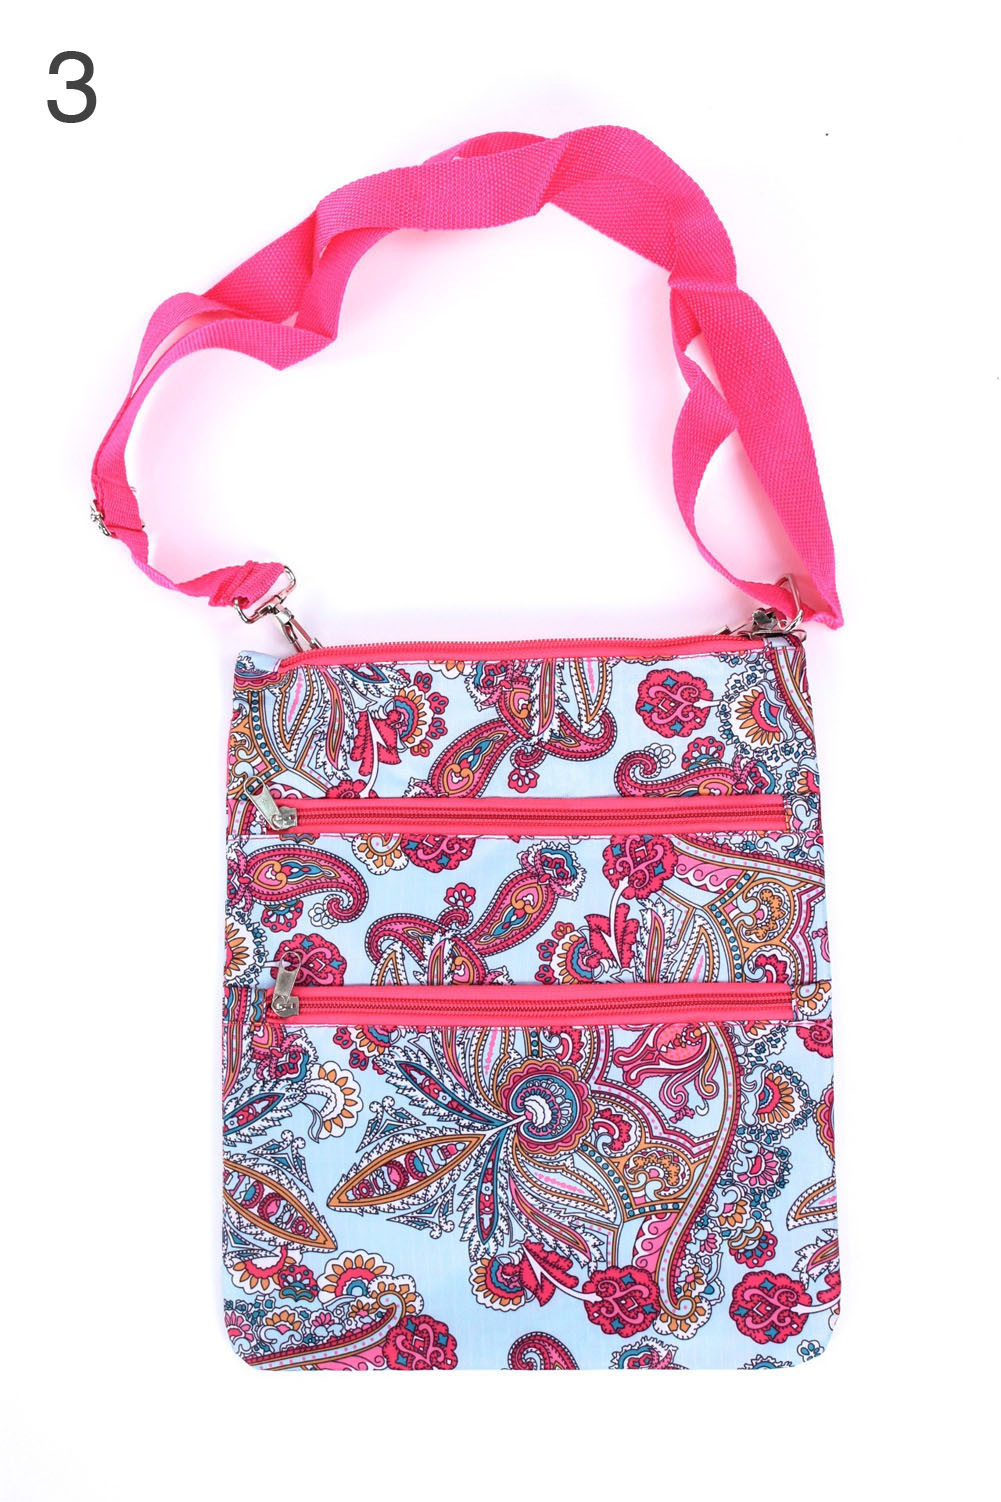 Messenger Bag Satchel All Over Print Pattern Fashion